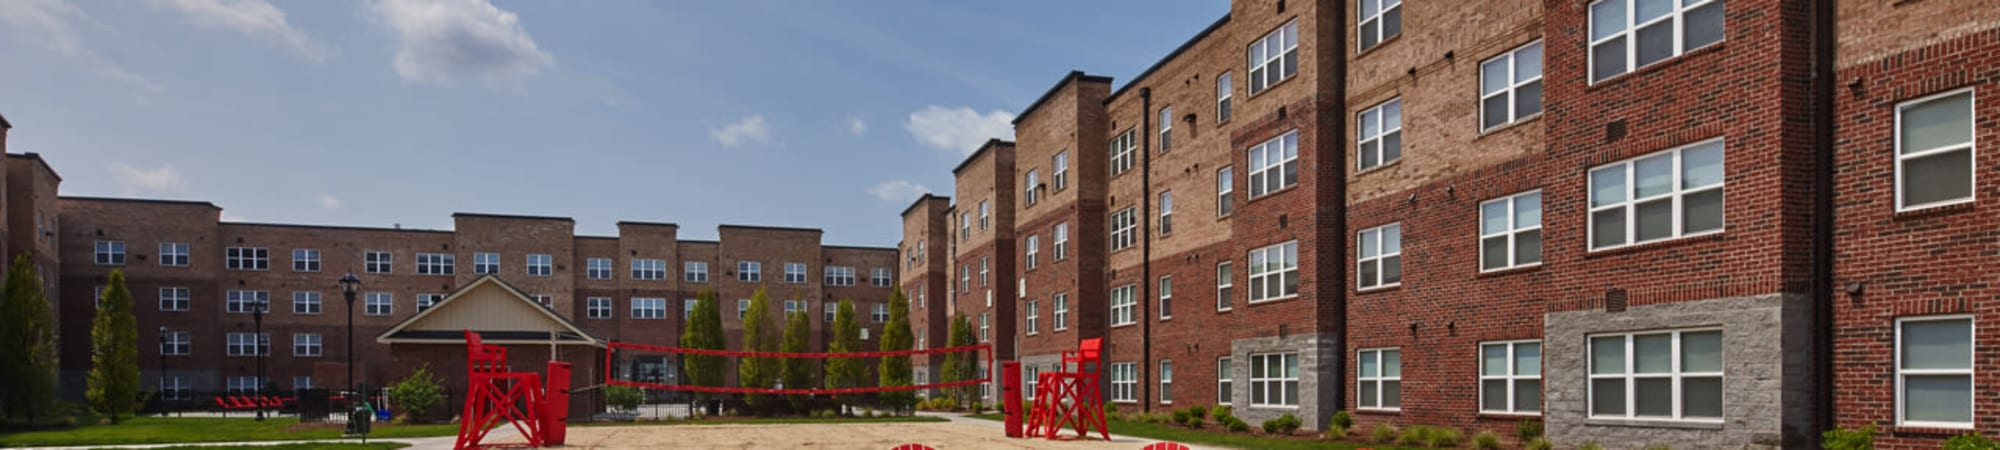 Learn about university offerings at Trifecta Apartments in Louisville, Kentucky.